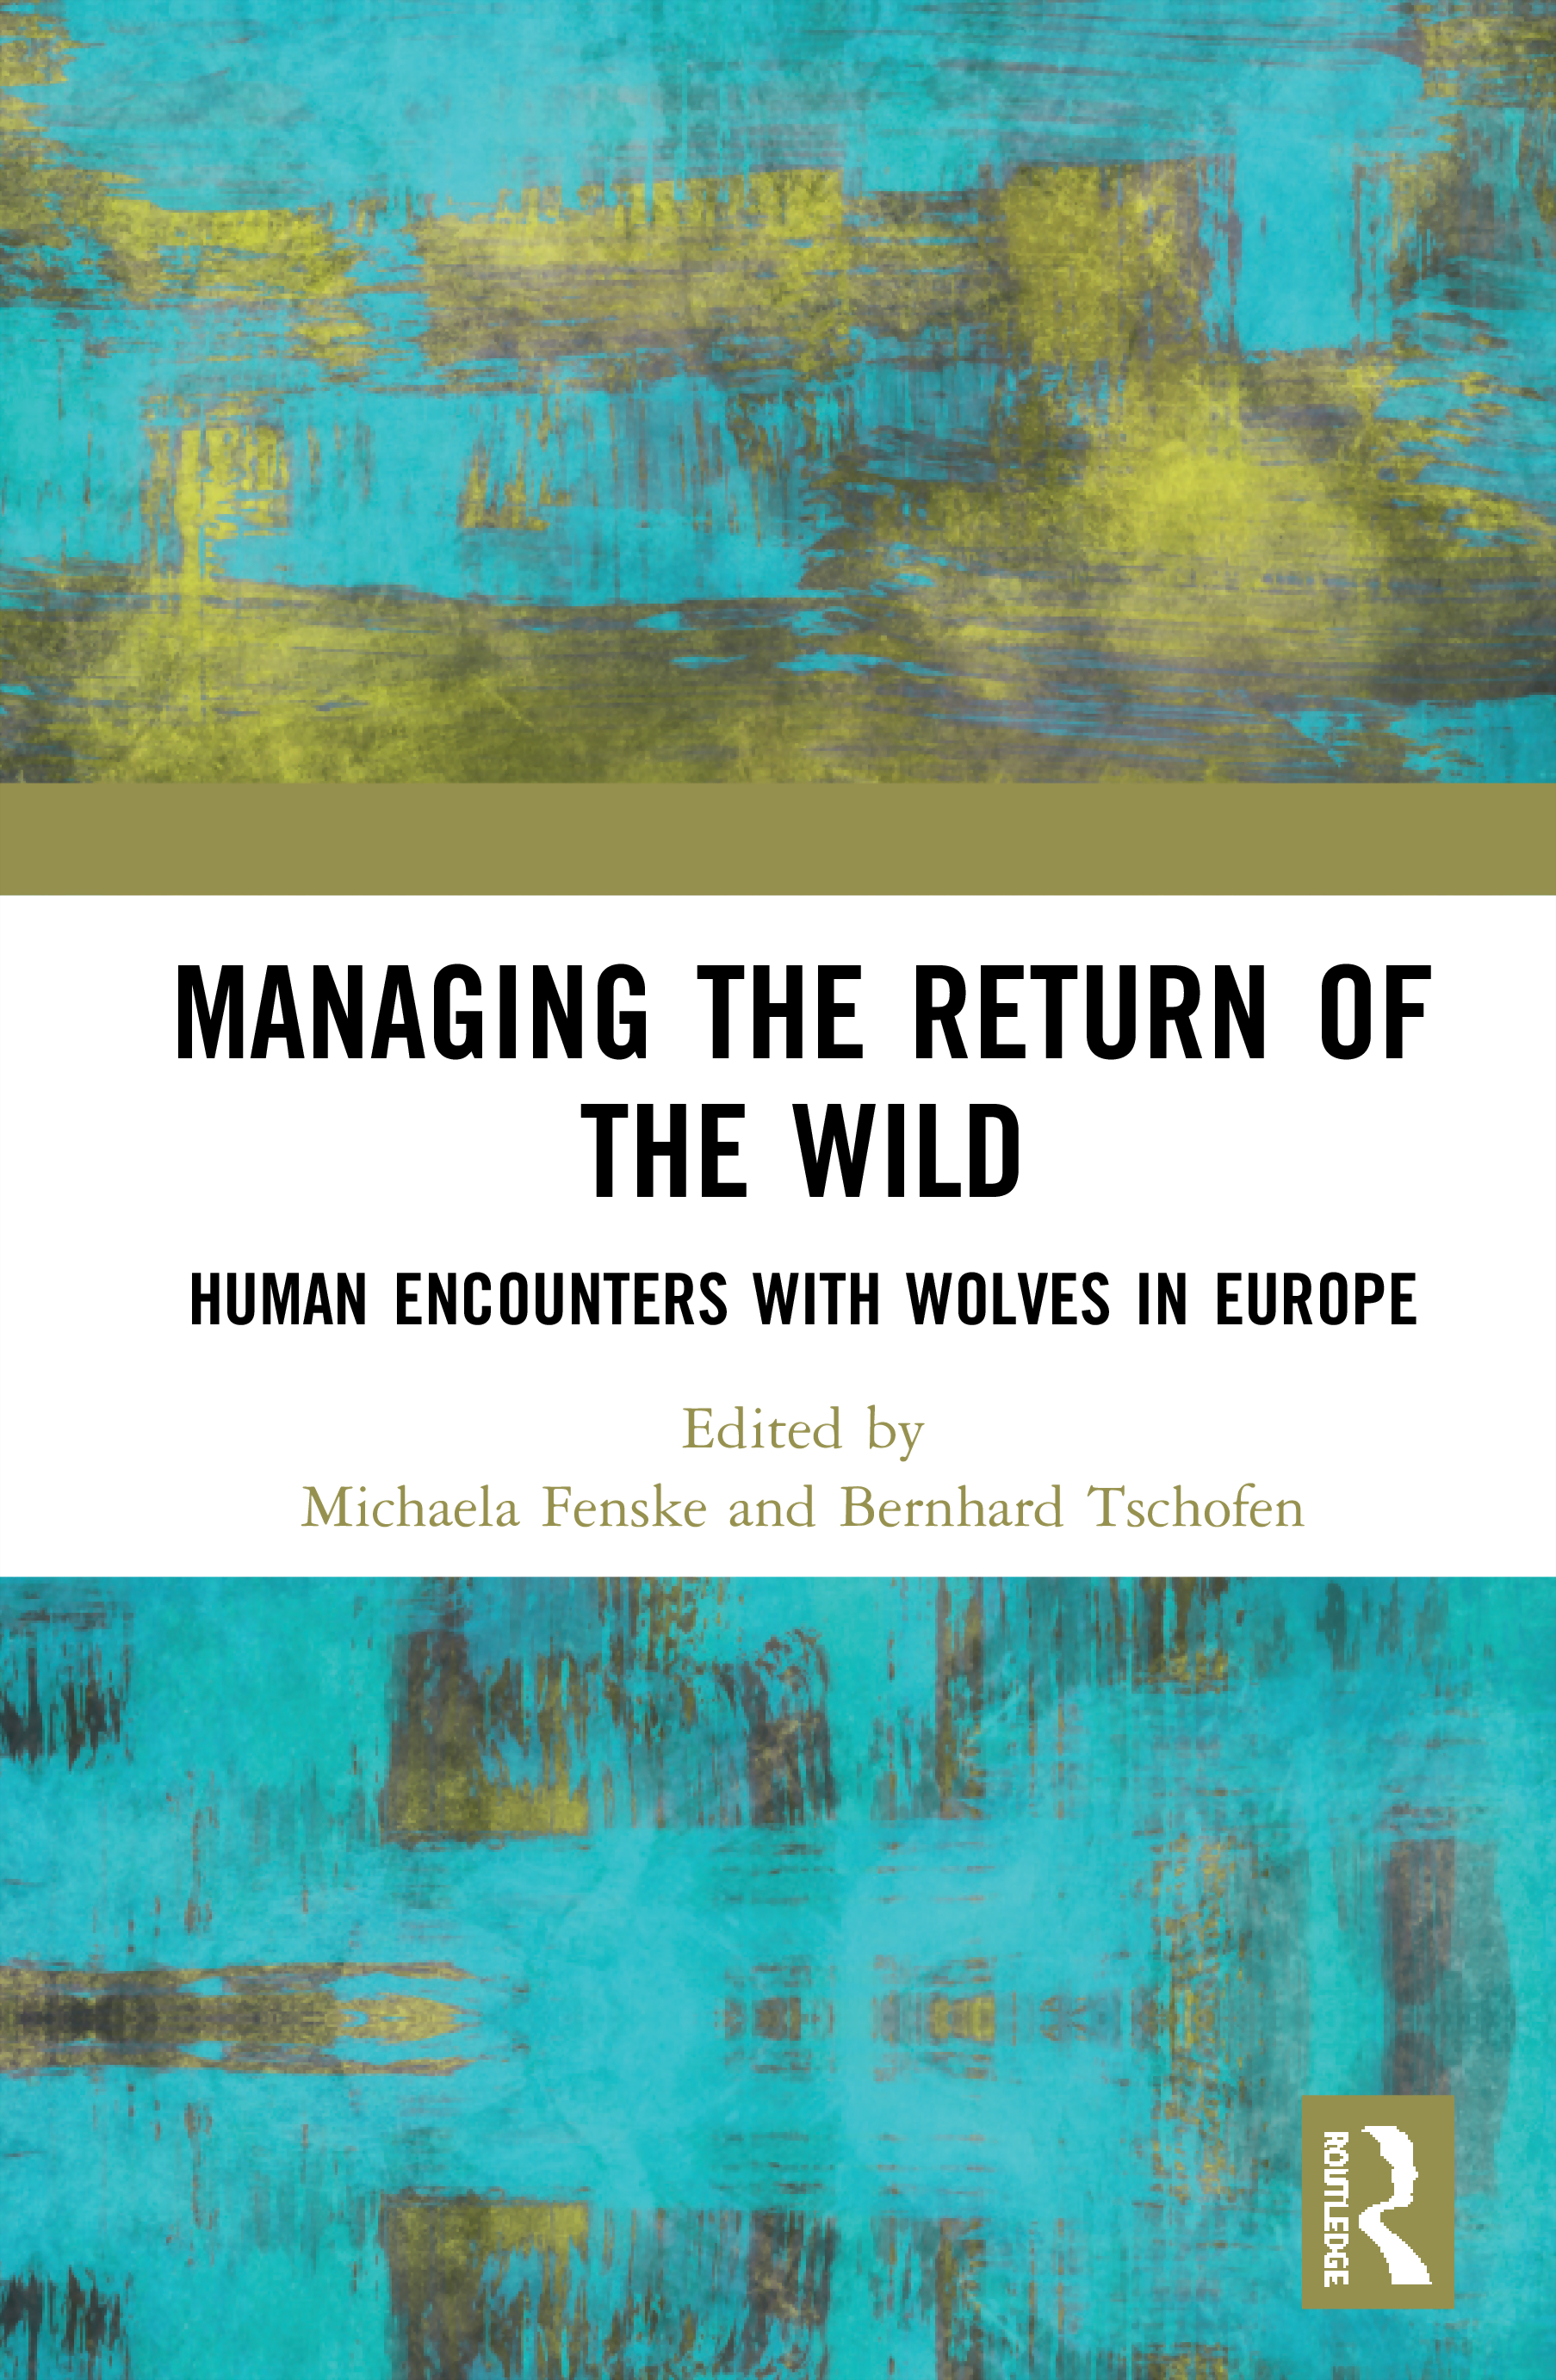 Managing the Return of the Wild: Human Encounters with Wolves in Europe book cover